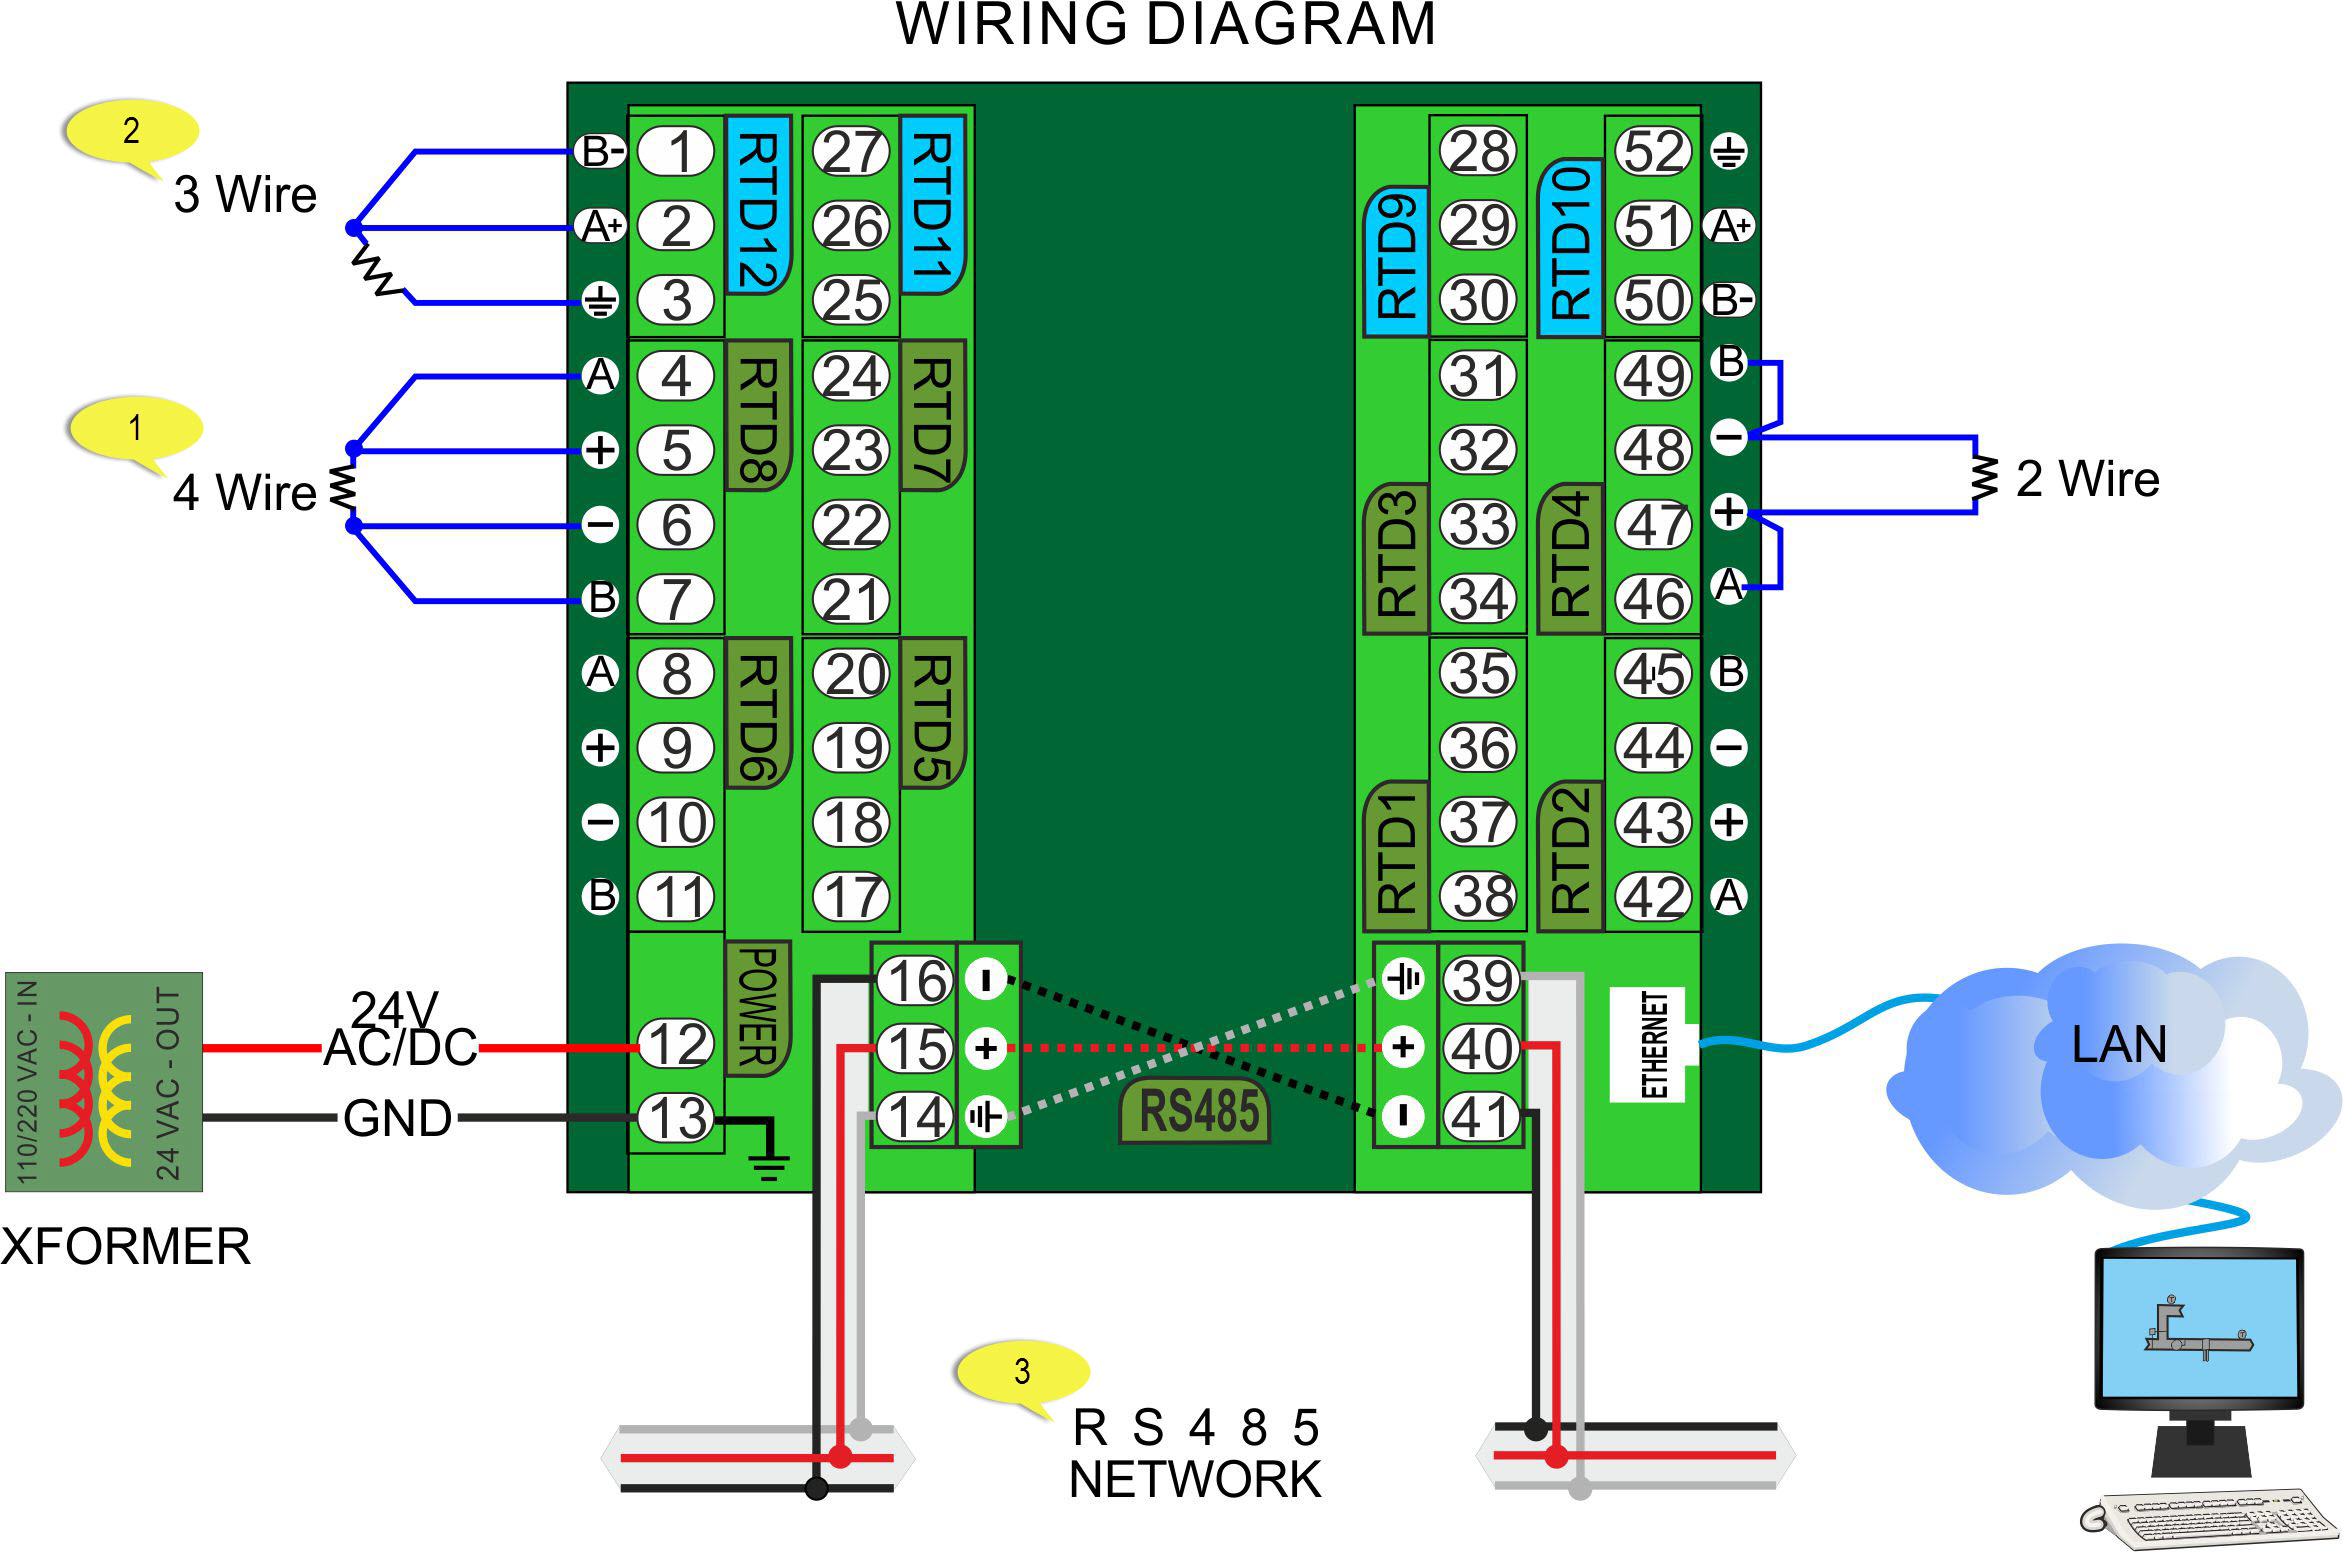 omega rtd 3 wire diagram wiring diagram 4 Wire to 3 Wire Connection omega rtd 3 wire diagram